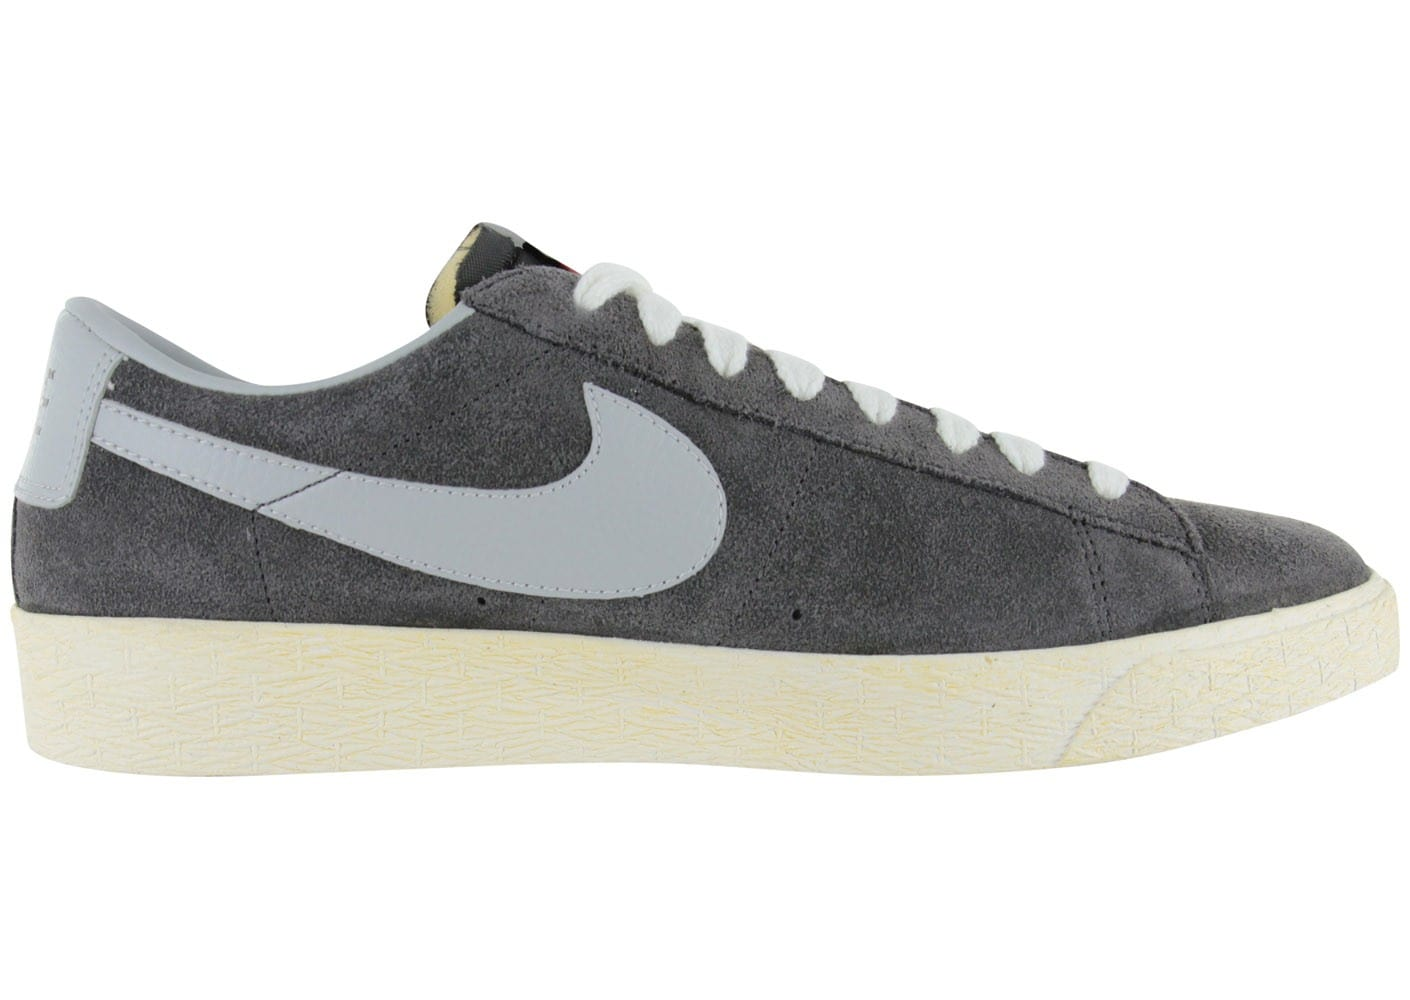 nike blazer low grise chaussures homme chausport. Black Bedroom Furniture Sets. Home Design Ideas